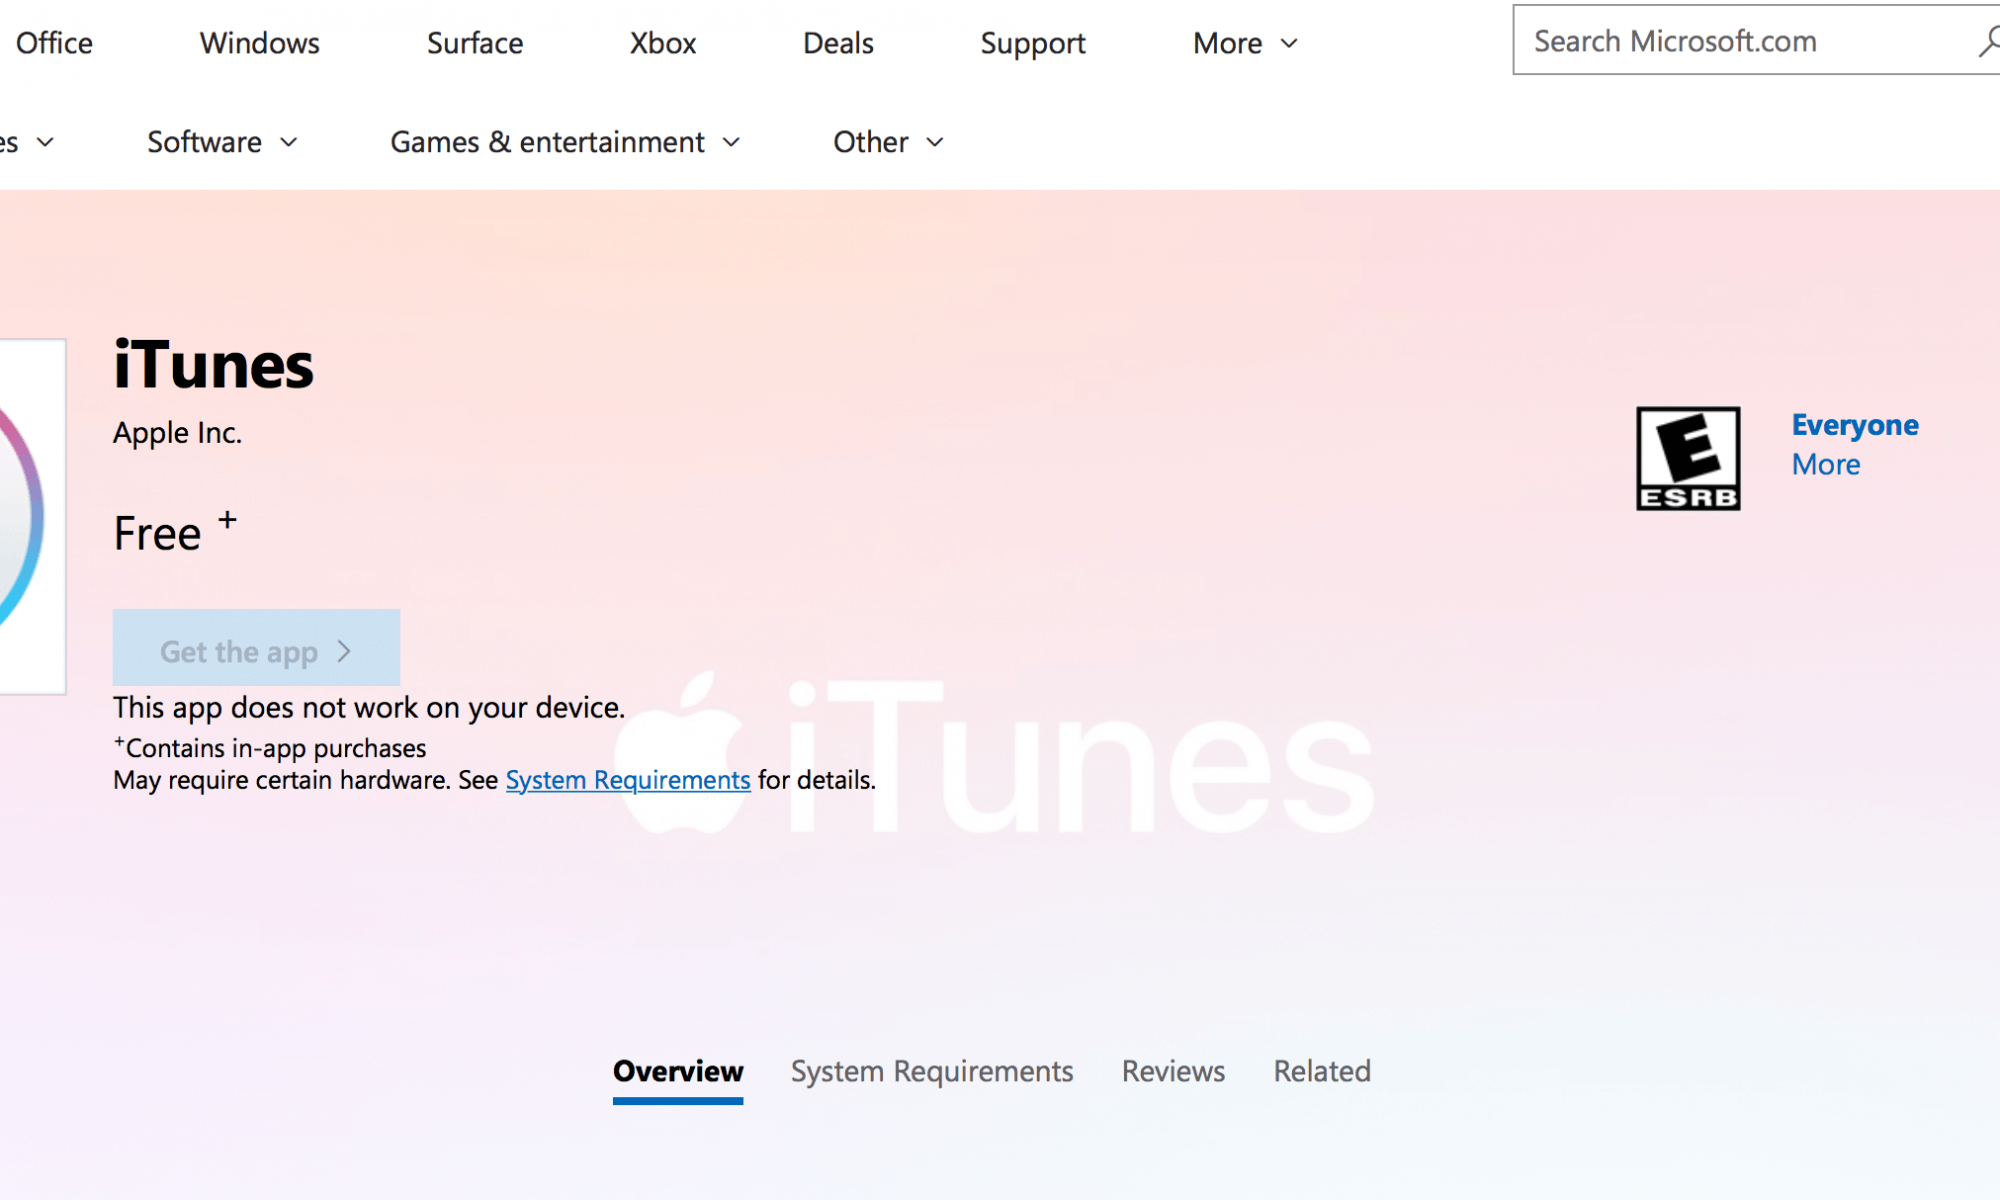 Apple iTunes in The Microsoft Store